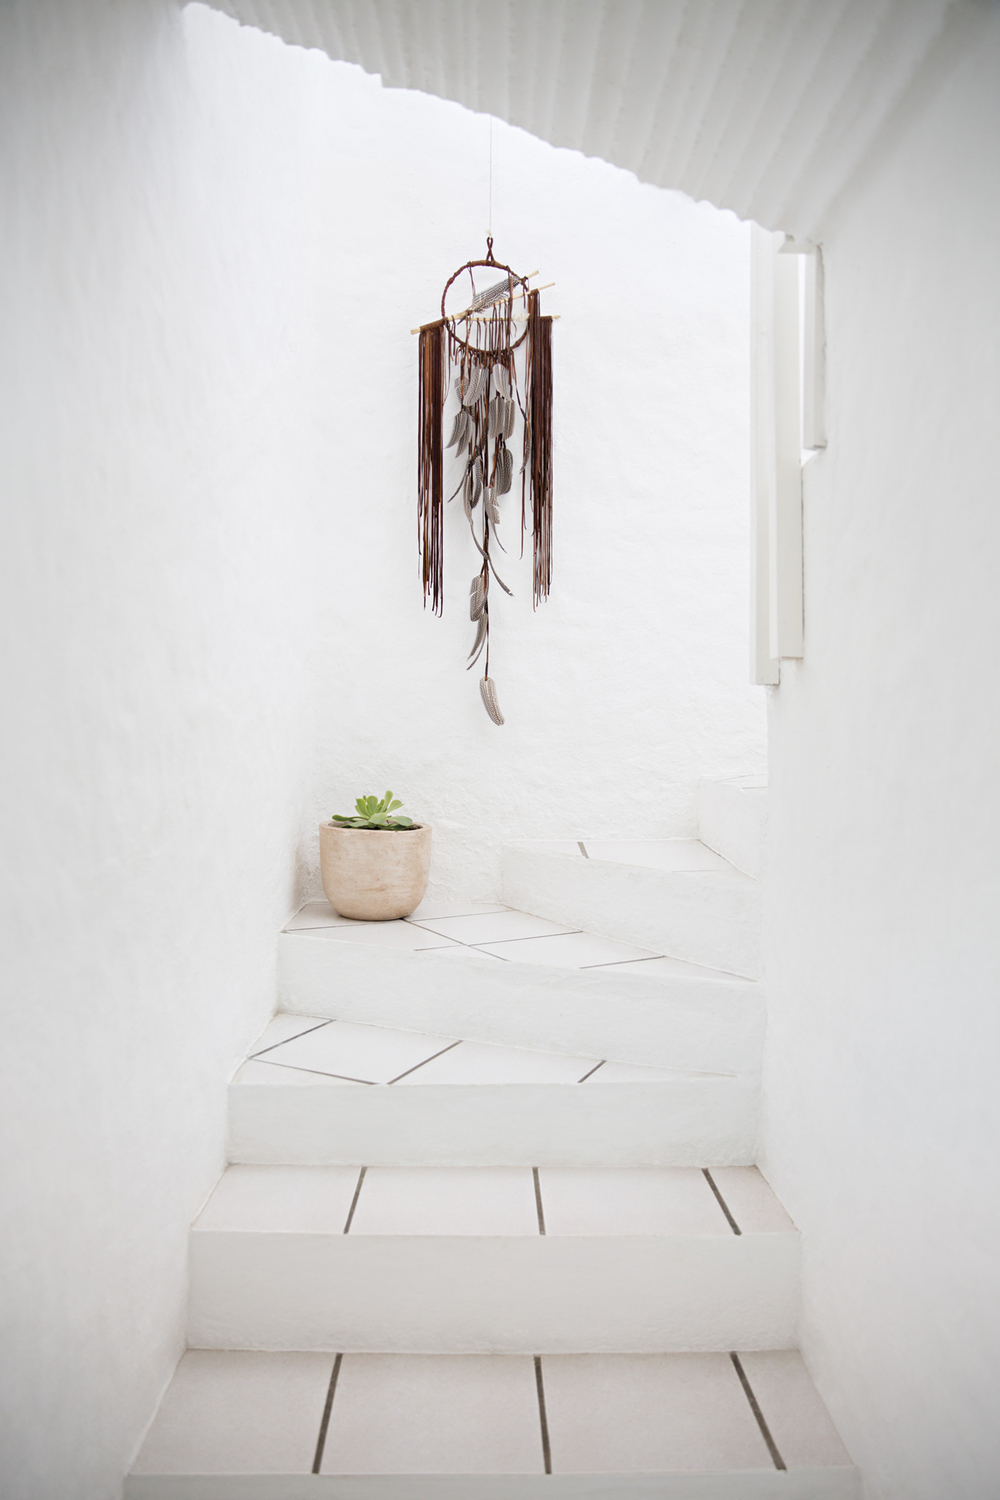 Boho Chic Home With Mexican Decor Touches